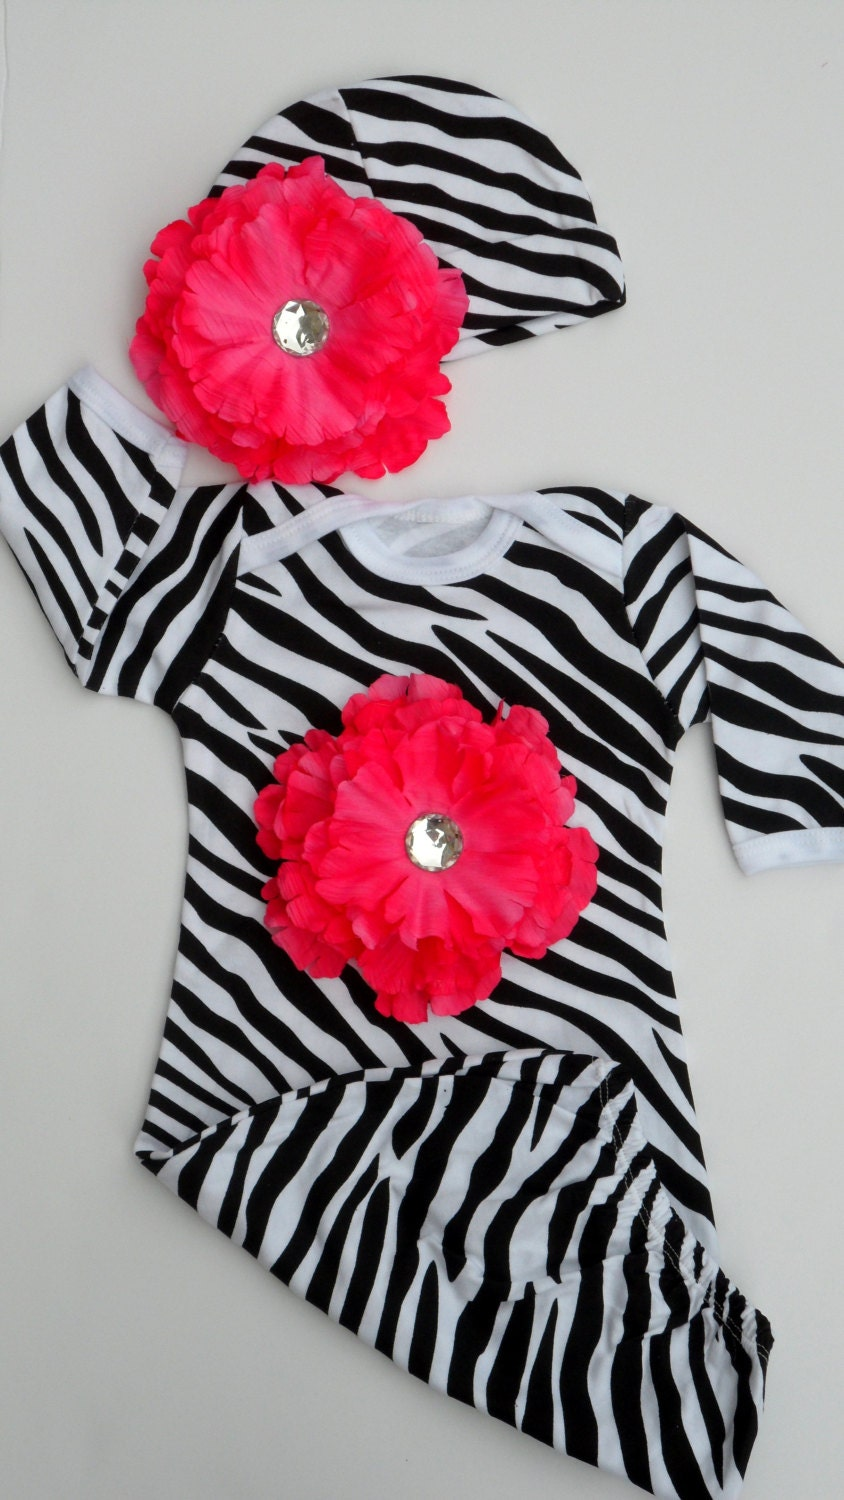 This is for 1 Baby Shower Mom To be Zebra It's a Girl Sash. I have a lot more Bottle Designs and Party supplies such as Pacifiers necklaces, cupcake rings, shower center pieces, shower banners, 48 pie.